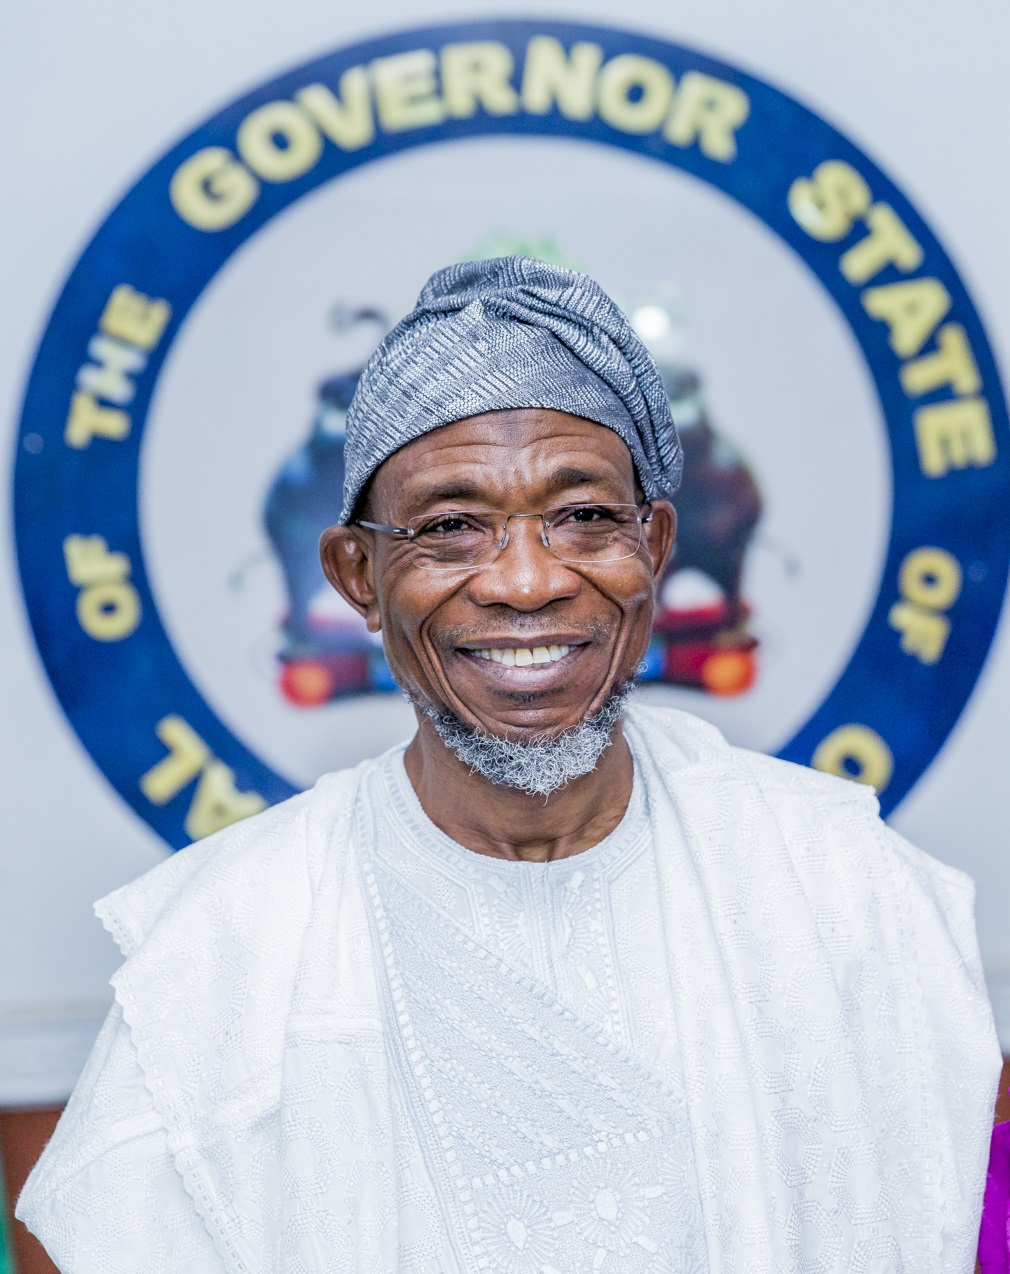 Aregbesola To Tour Jordan With President Buhari